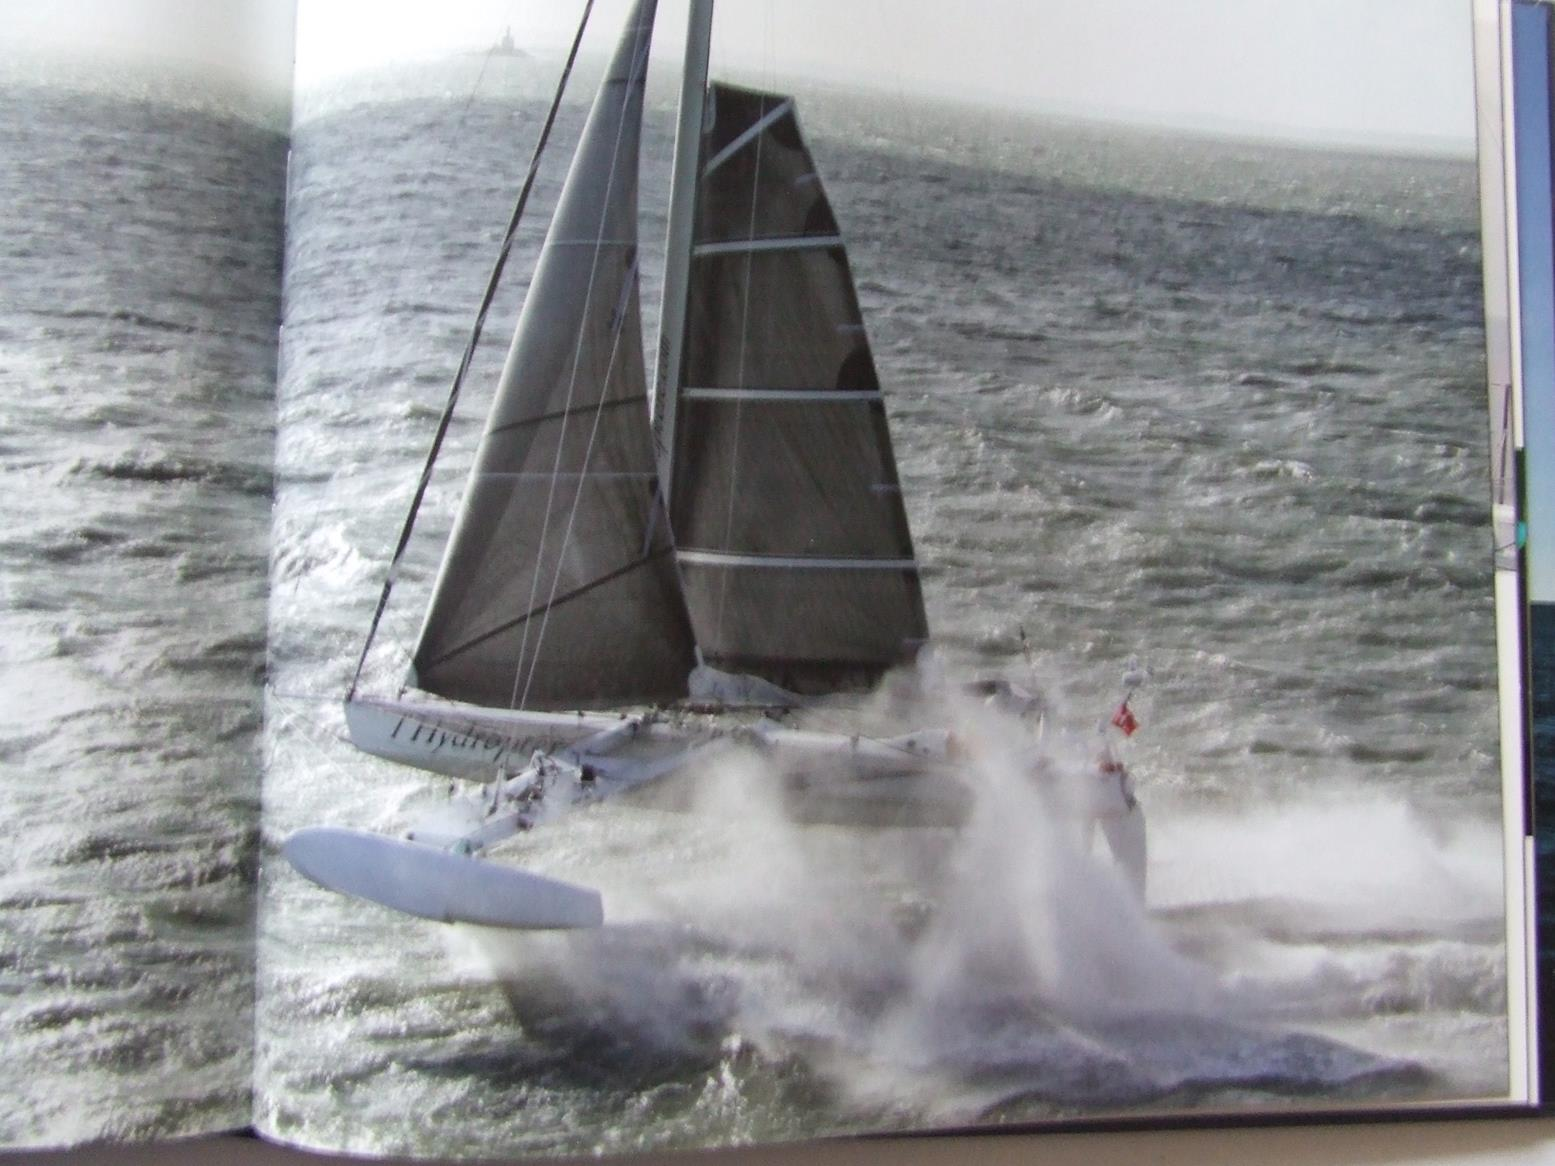 The Wind Barrier, the extraordinary epic of l'Hydroptere